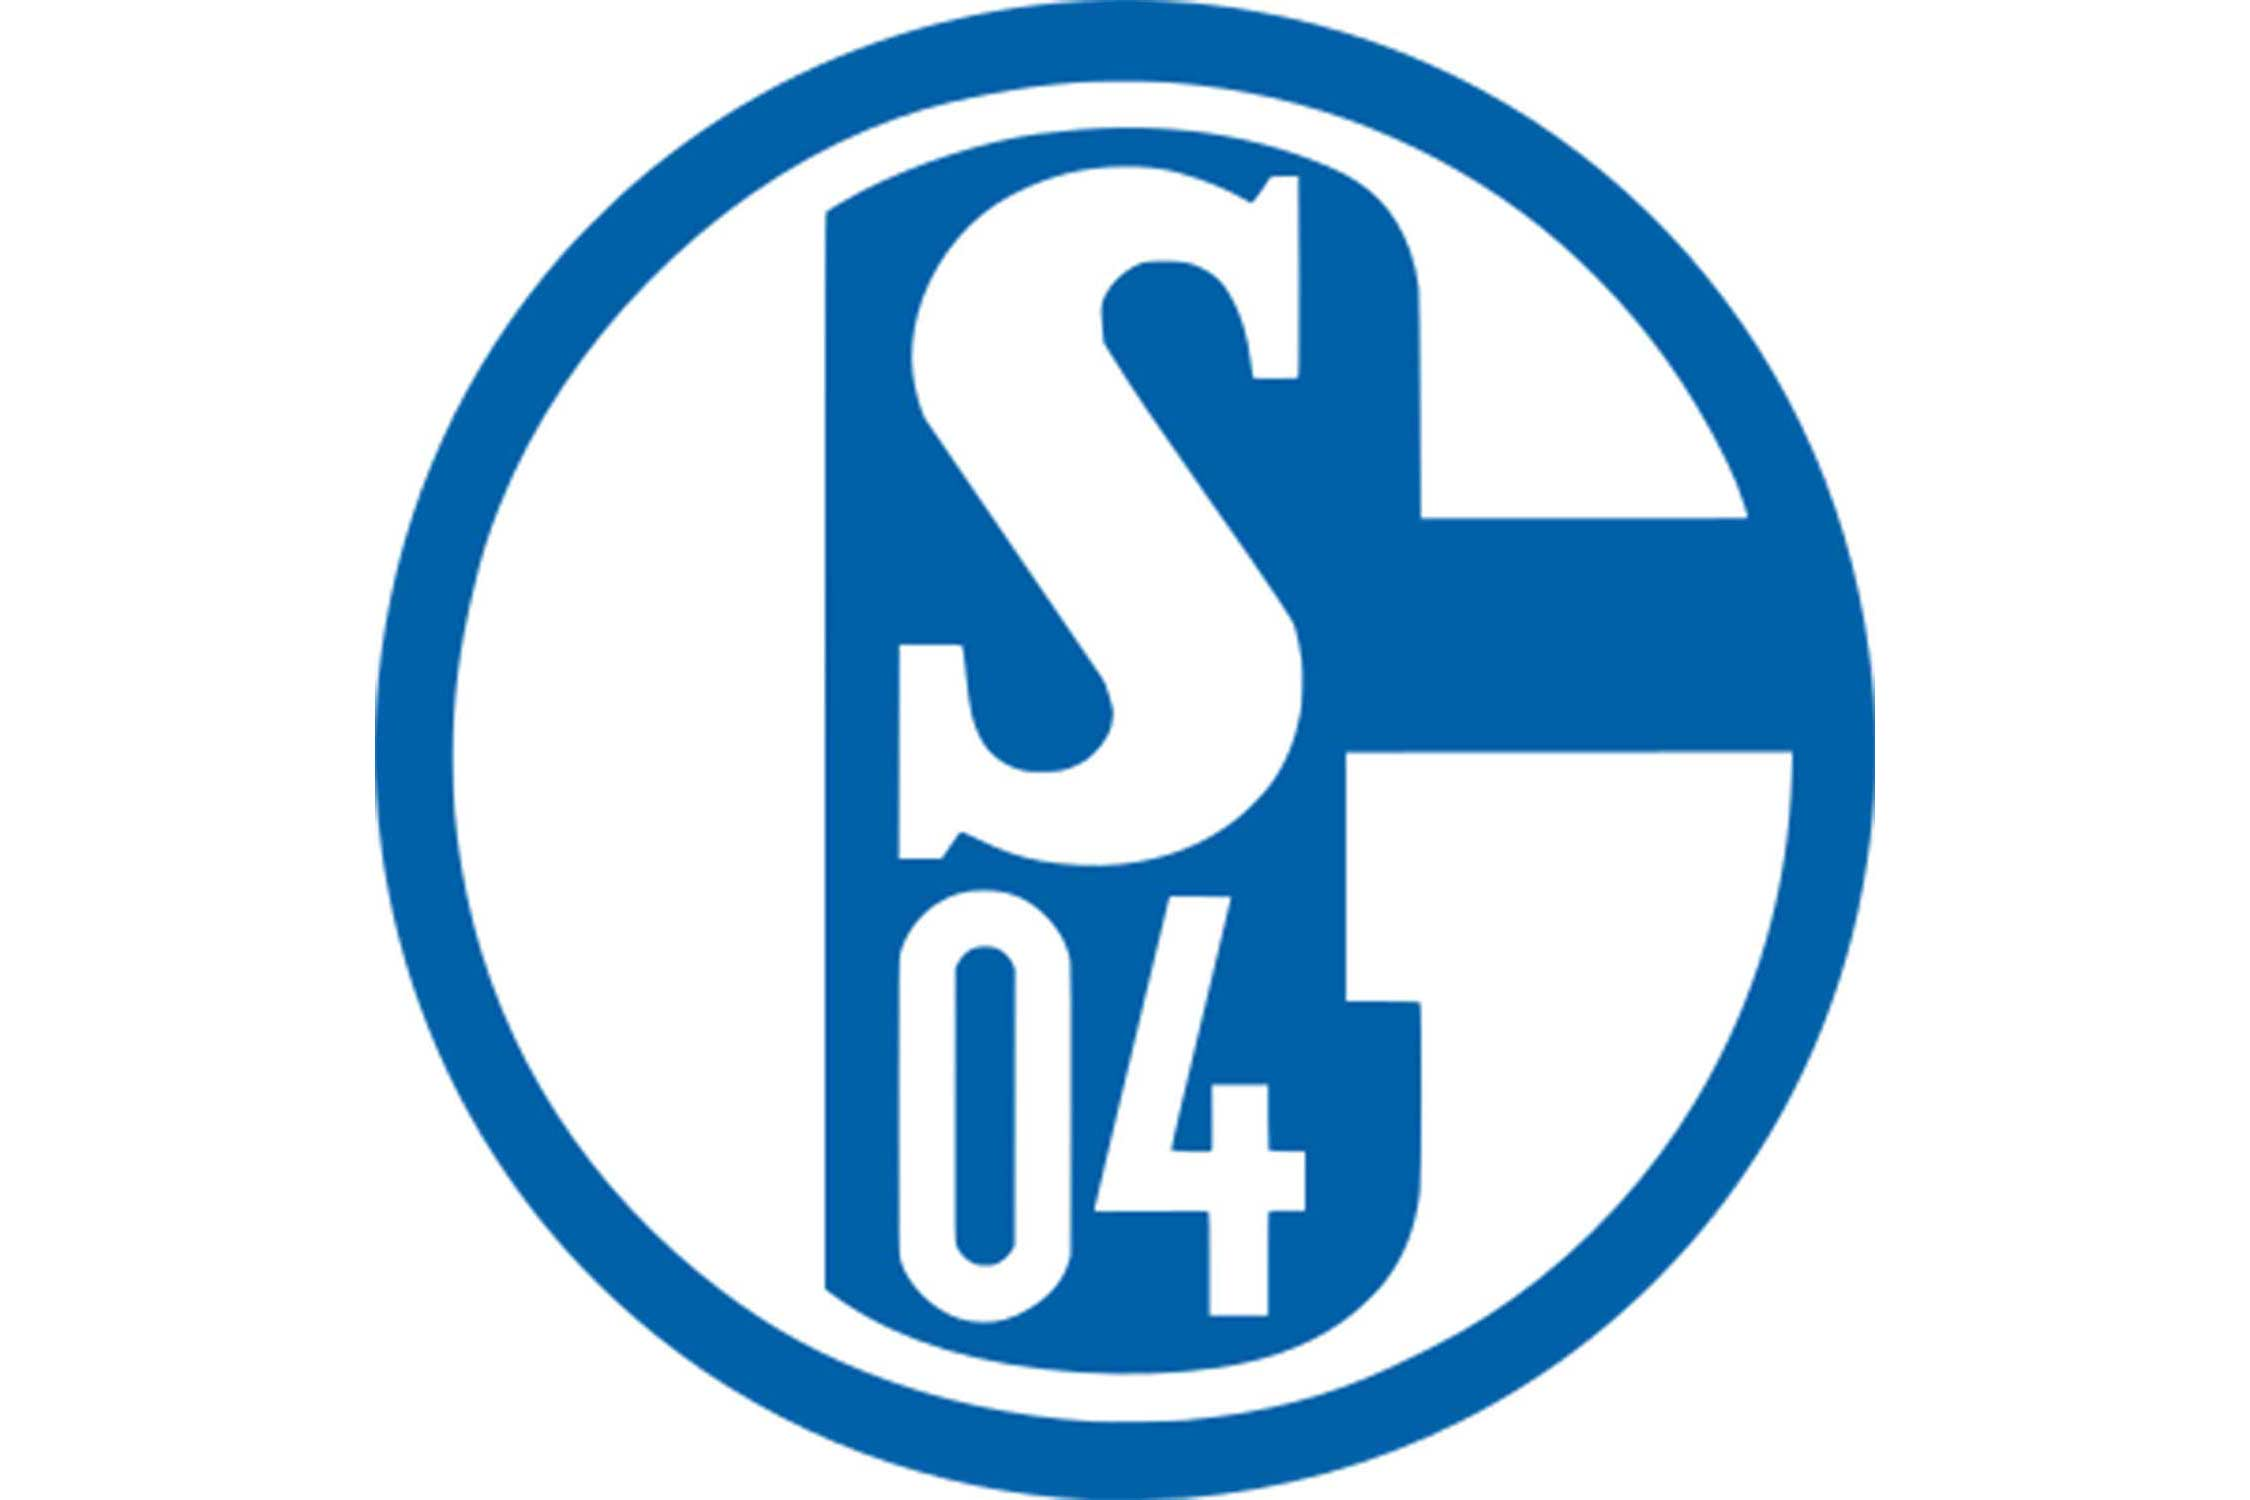 Surrounding the S (representing the name of the club) and the 04 (representing 1904, the club's founding year) is a large letter G. That stands for Gelsinkirchen, the city where Schalke 04 is based.